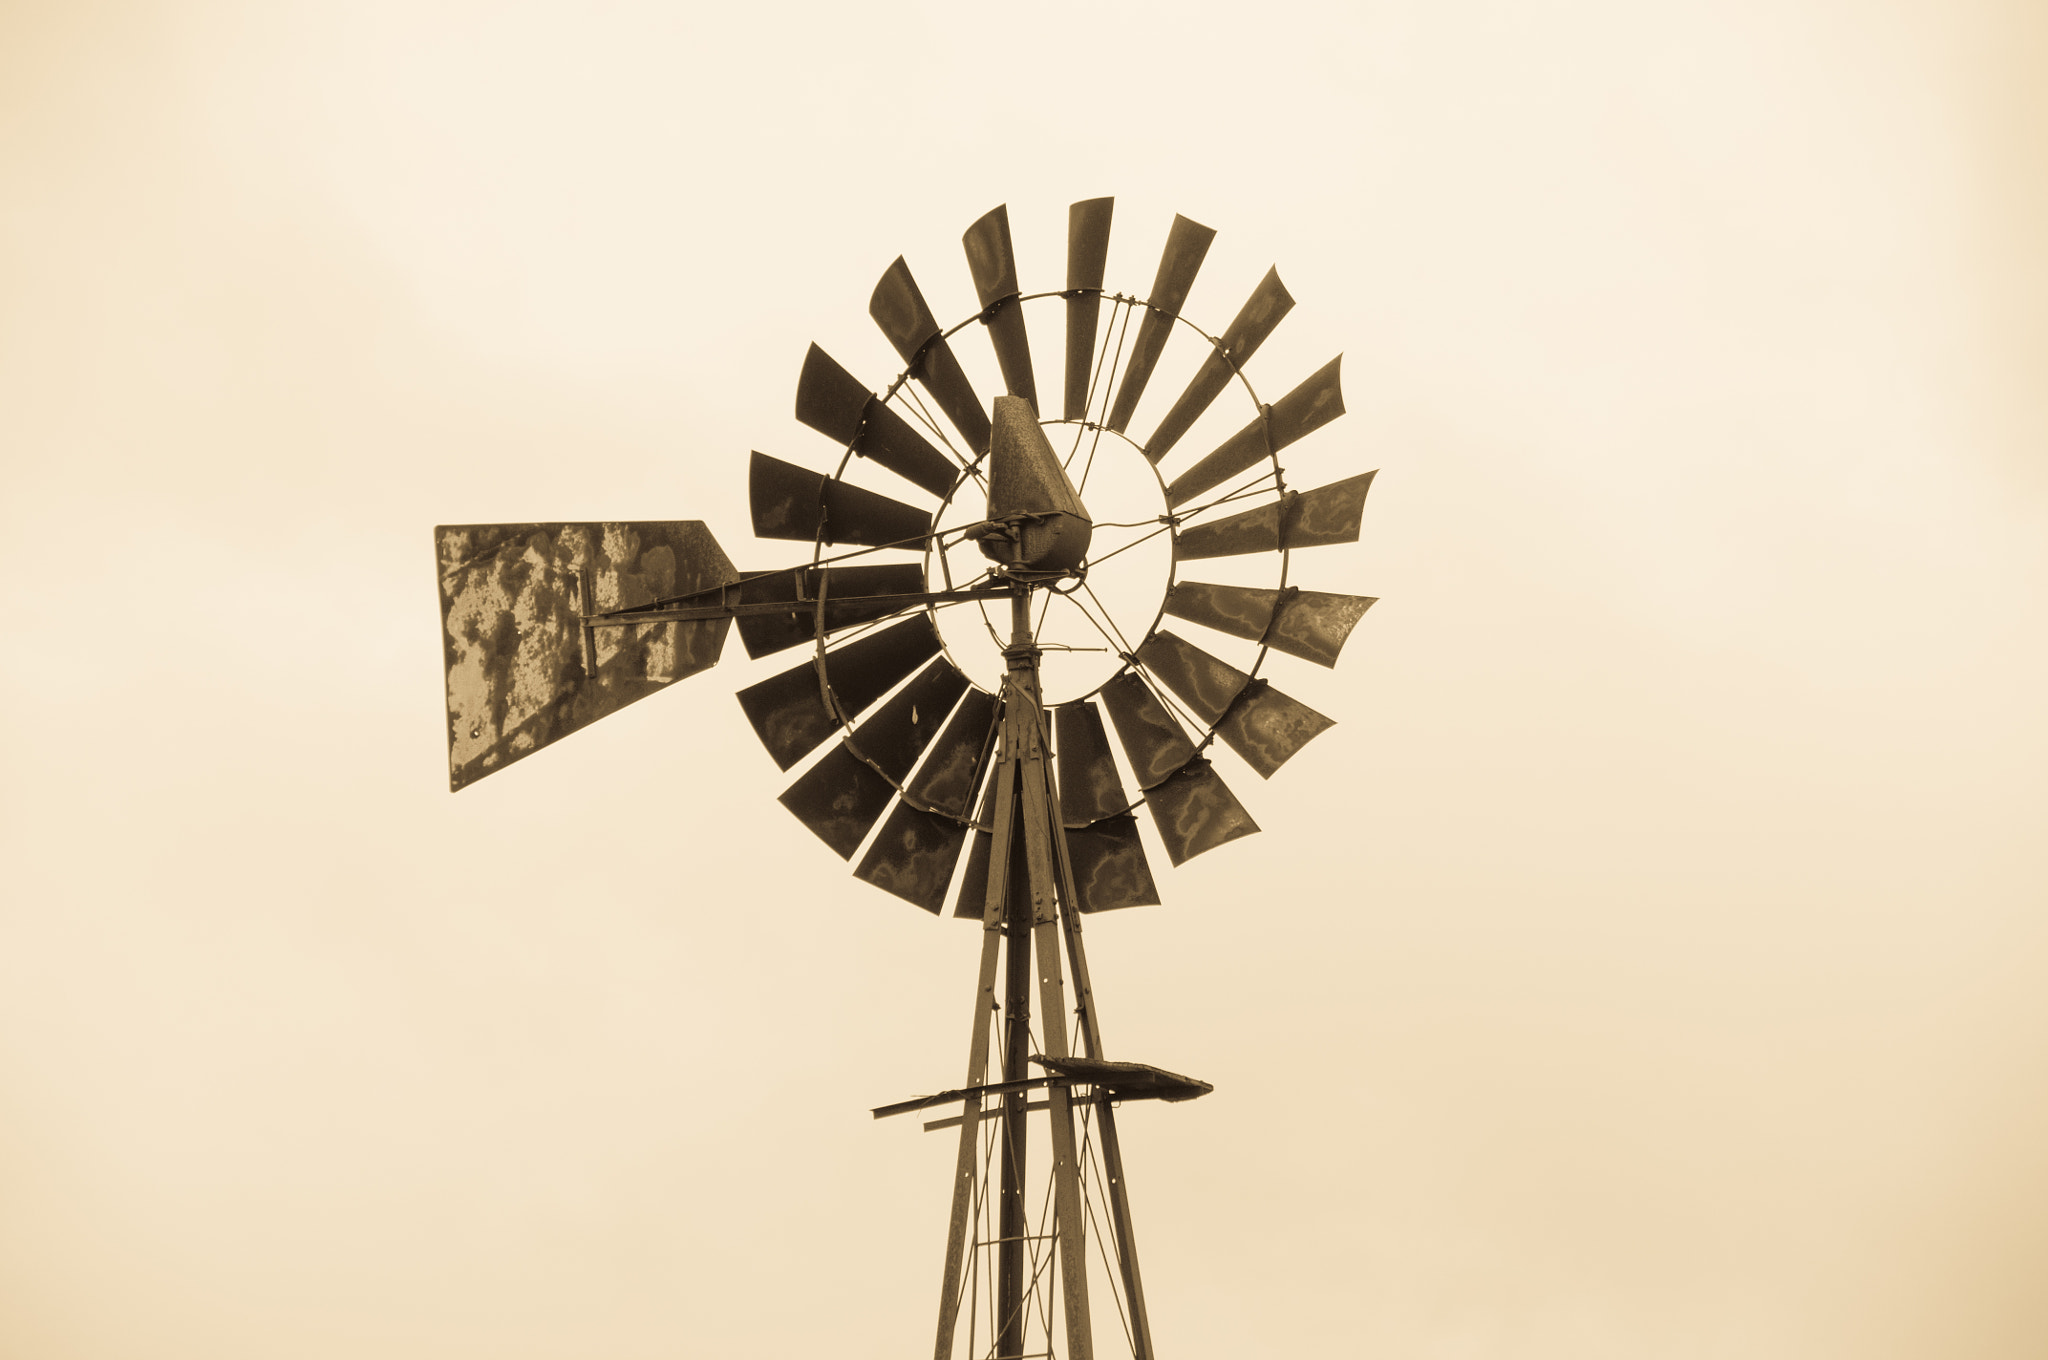 Photograph Antique Windmill by Matt Diley on 500px